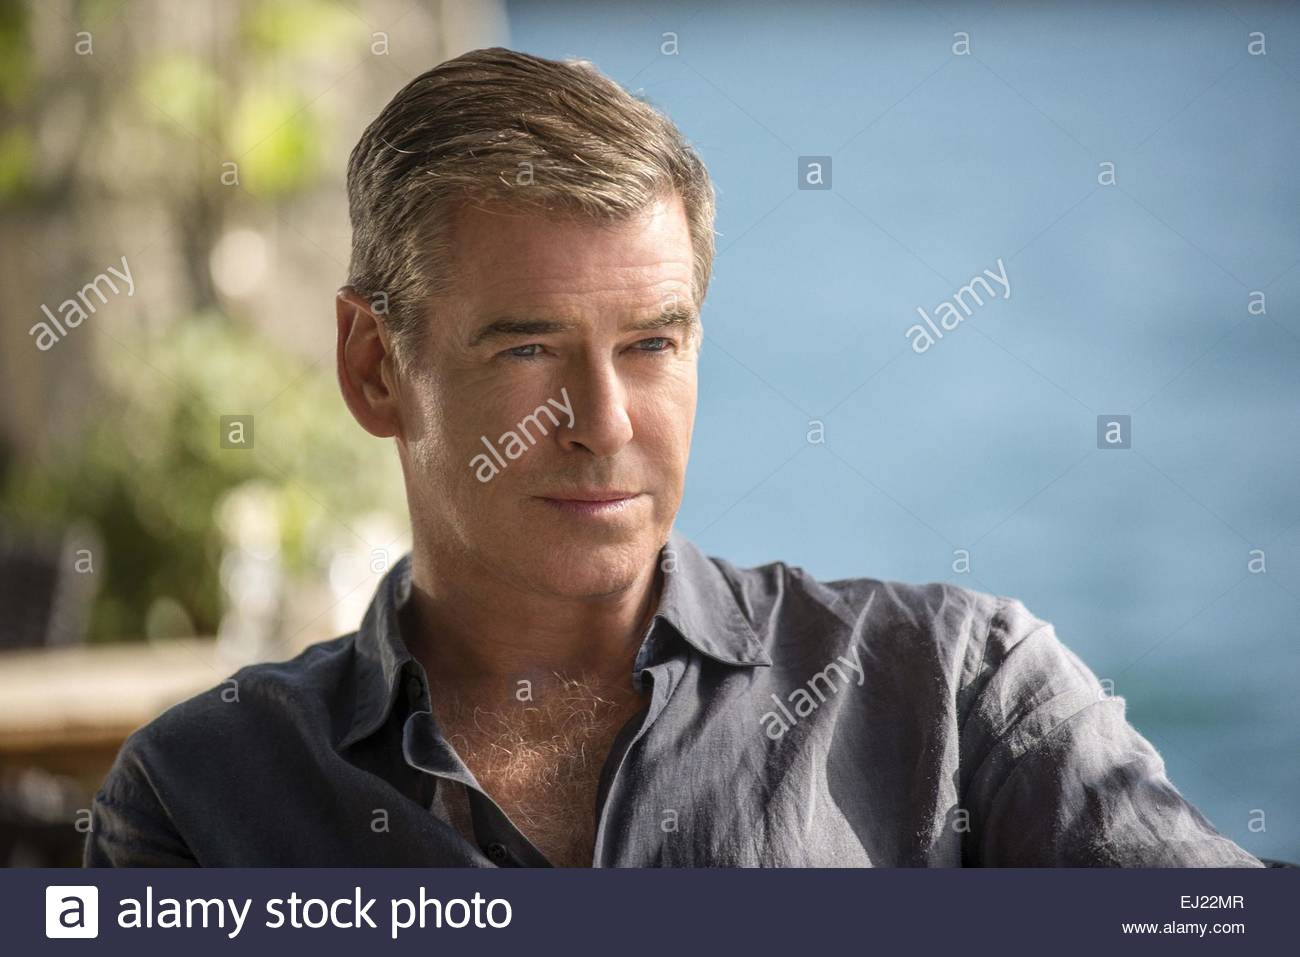 The November Man 2014 Pierce Brosnan Stock Photos & The November Man ...